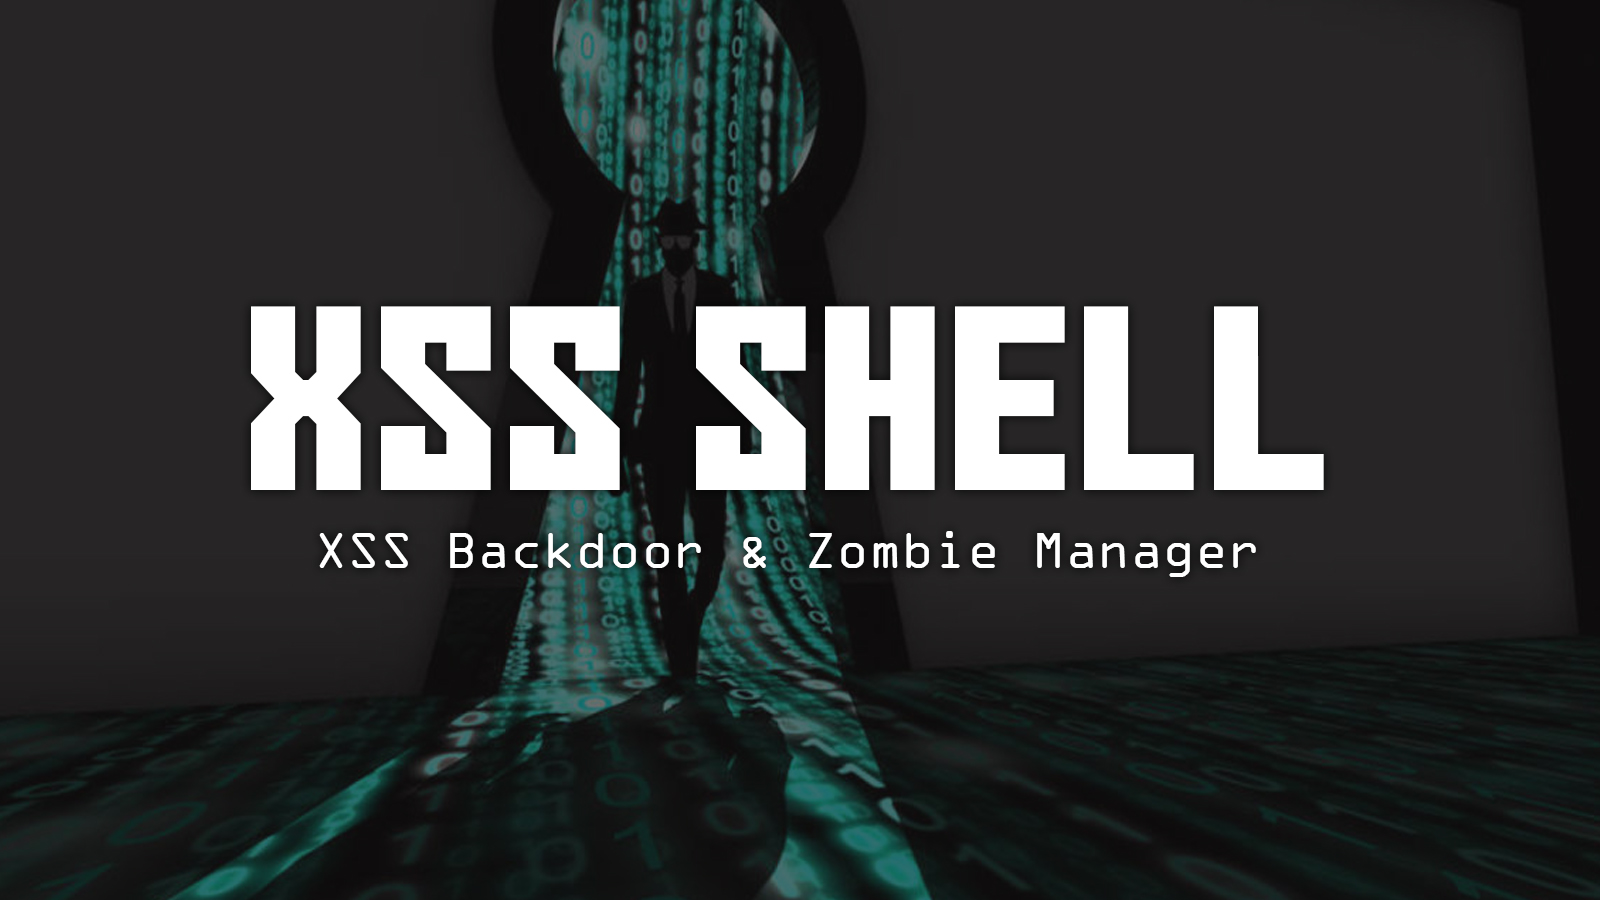 XSS Shell - XSS Backdoor & Zombie Manager